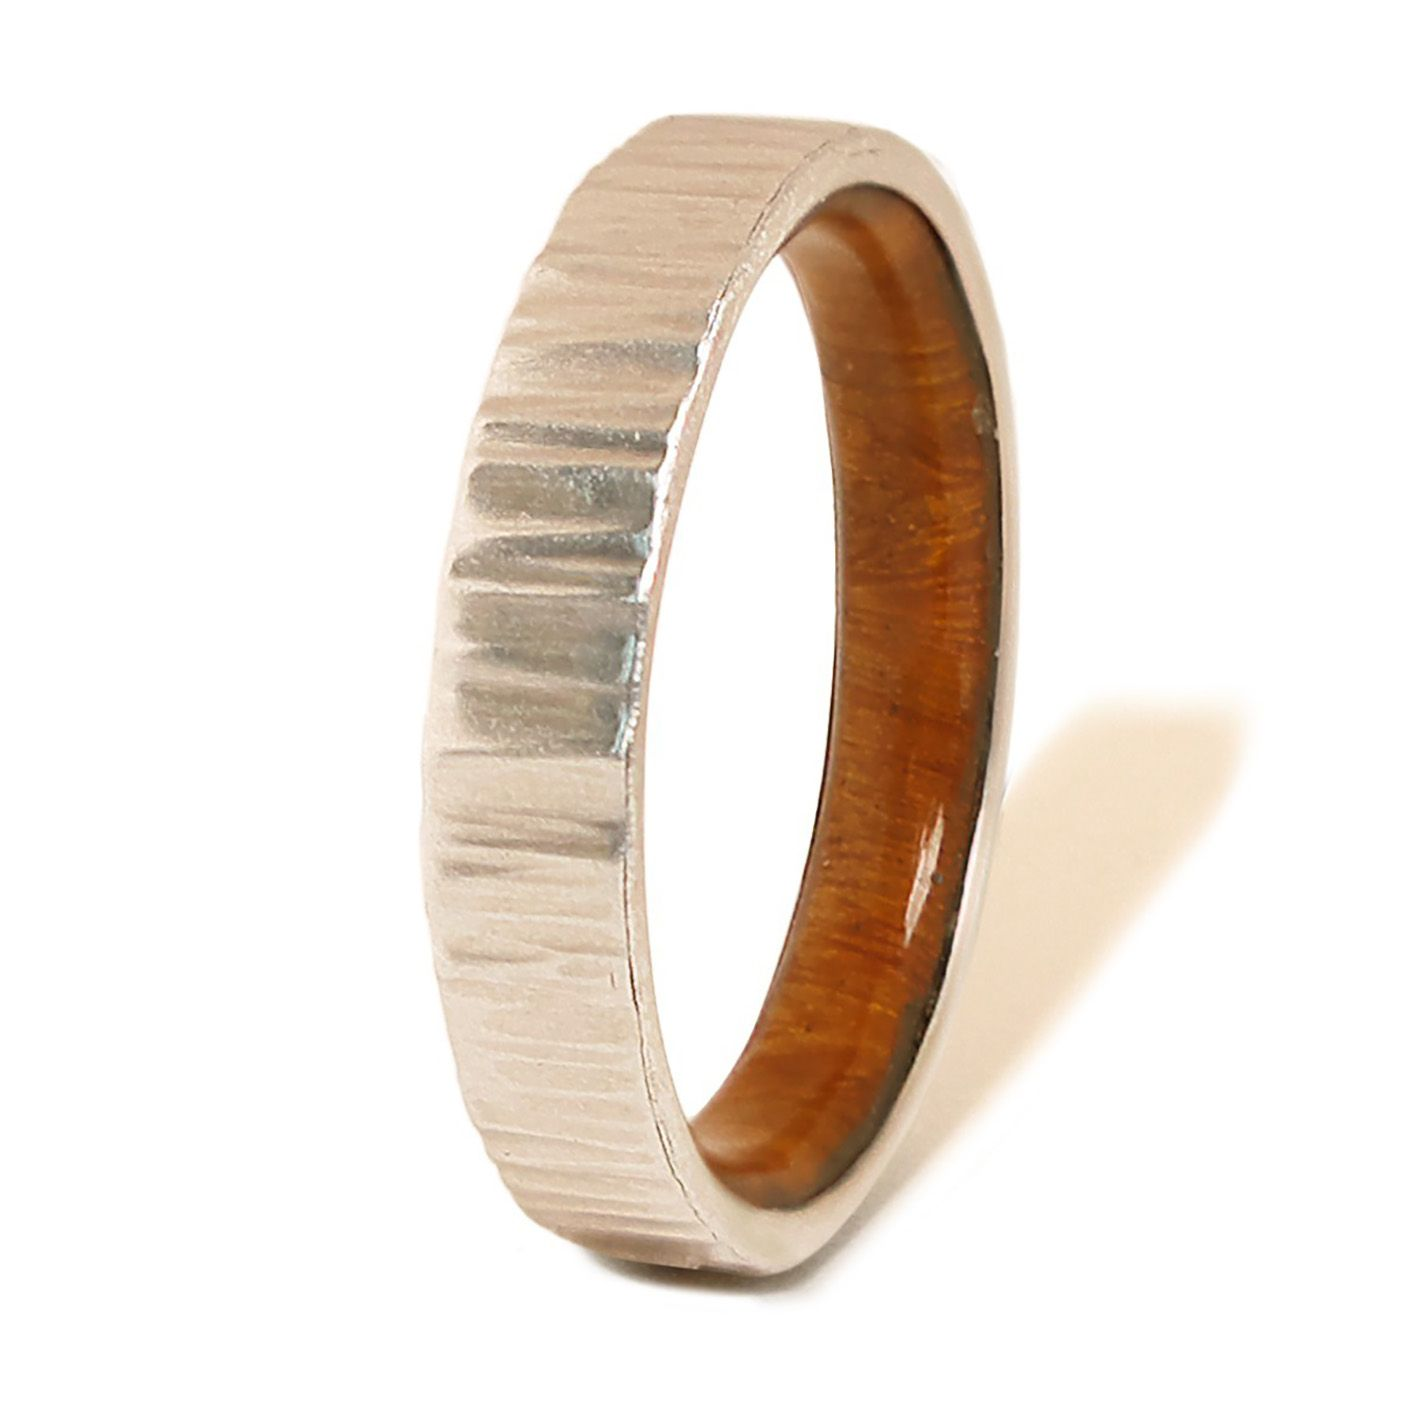 Silver hammered ring and lignum vitae wood